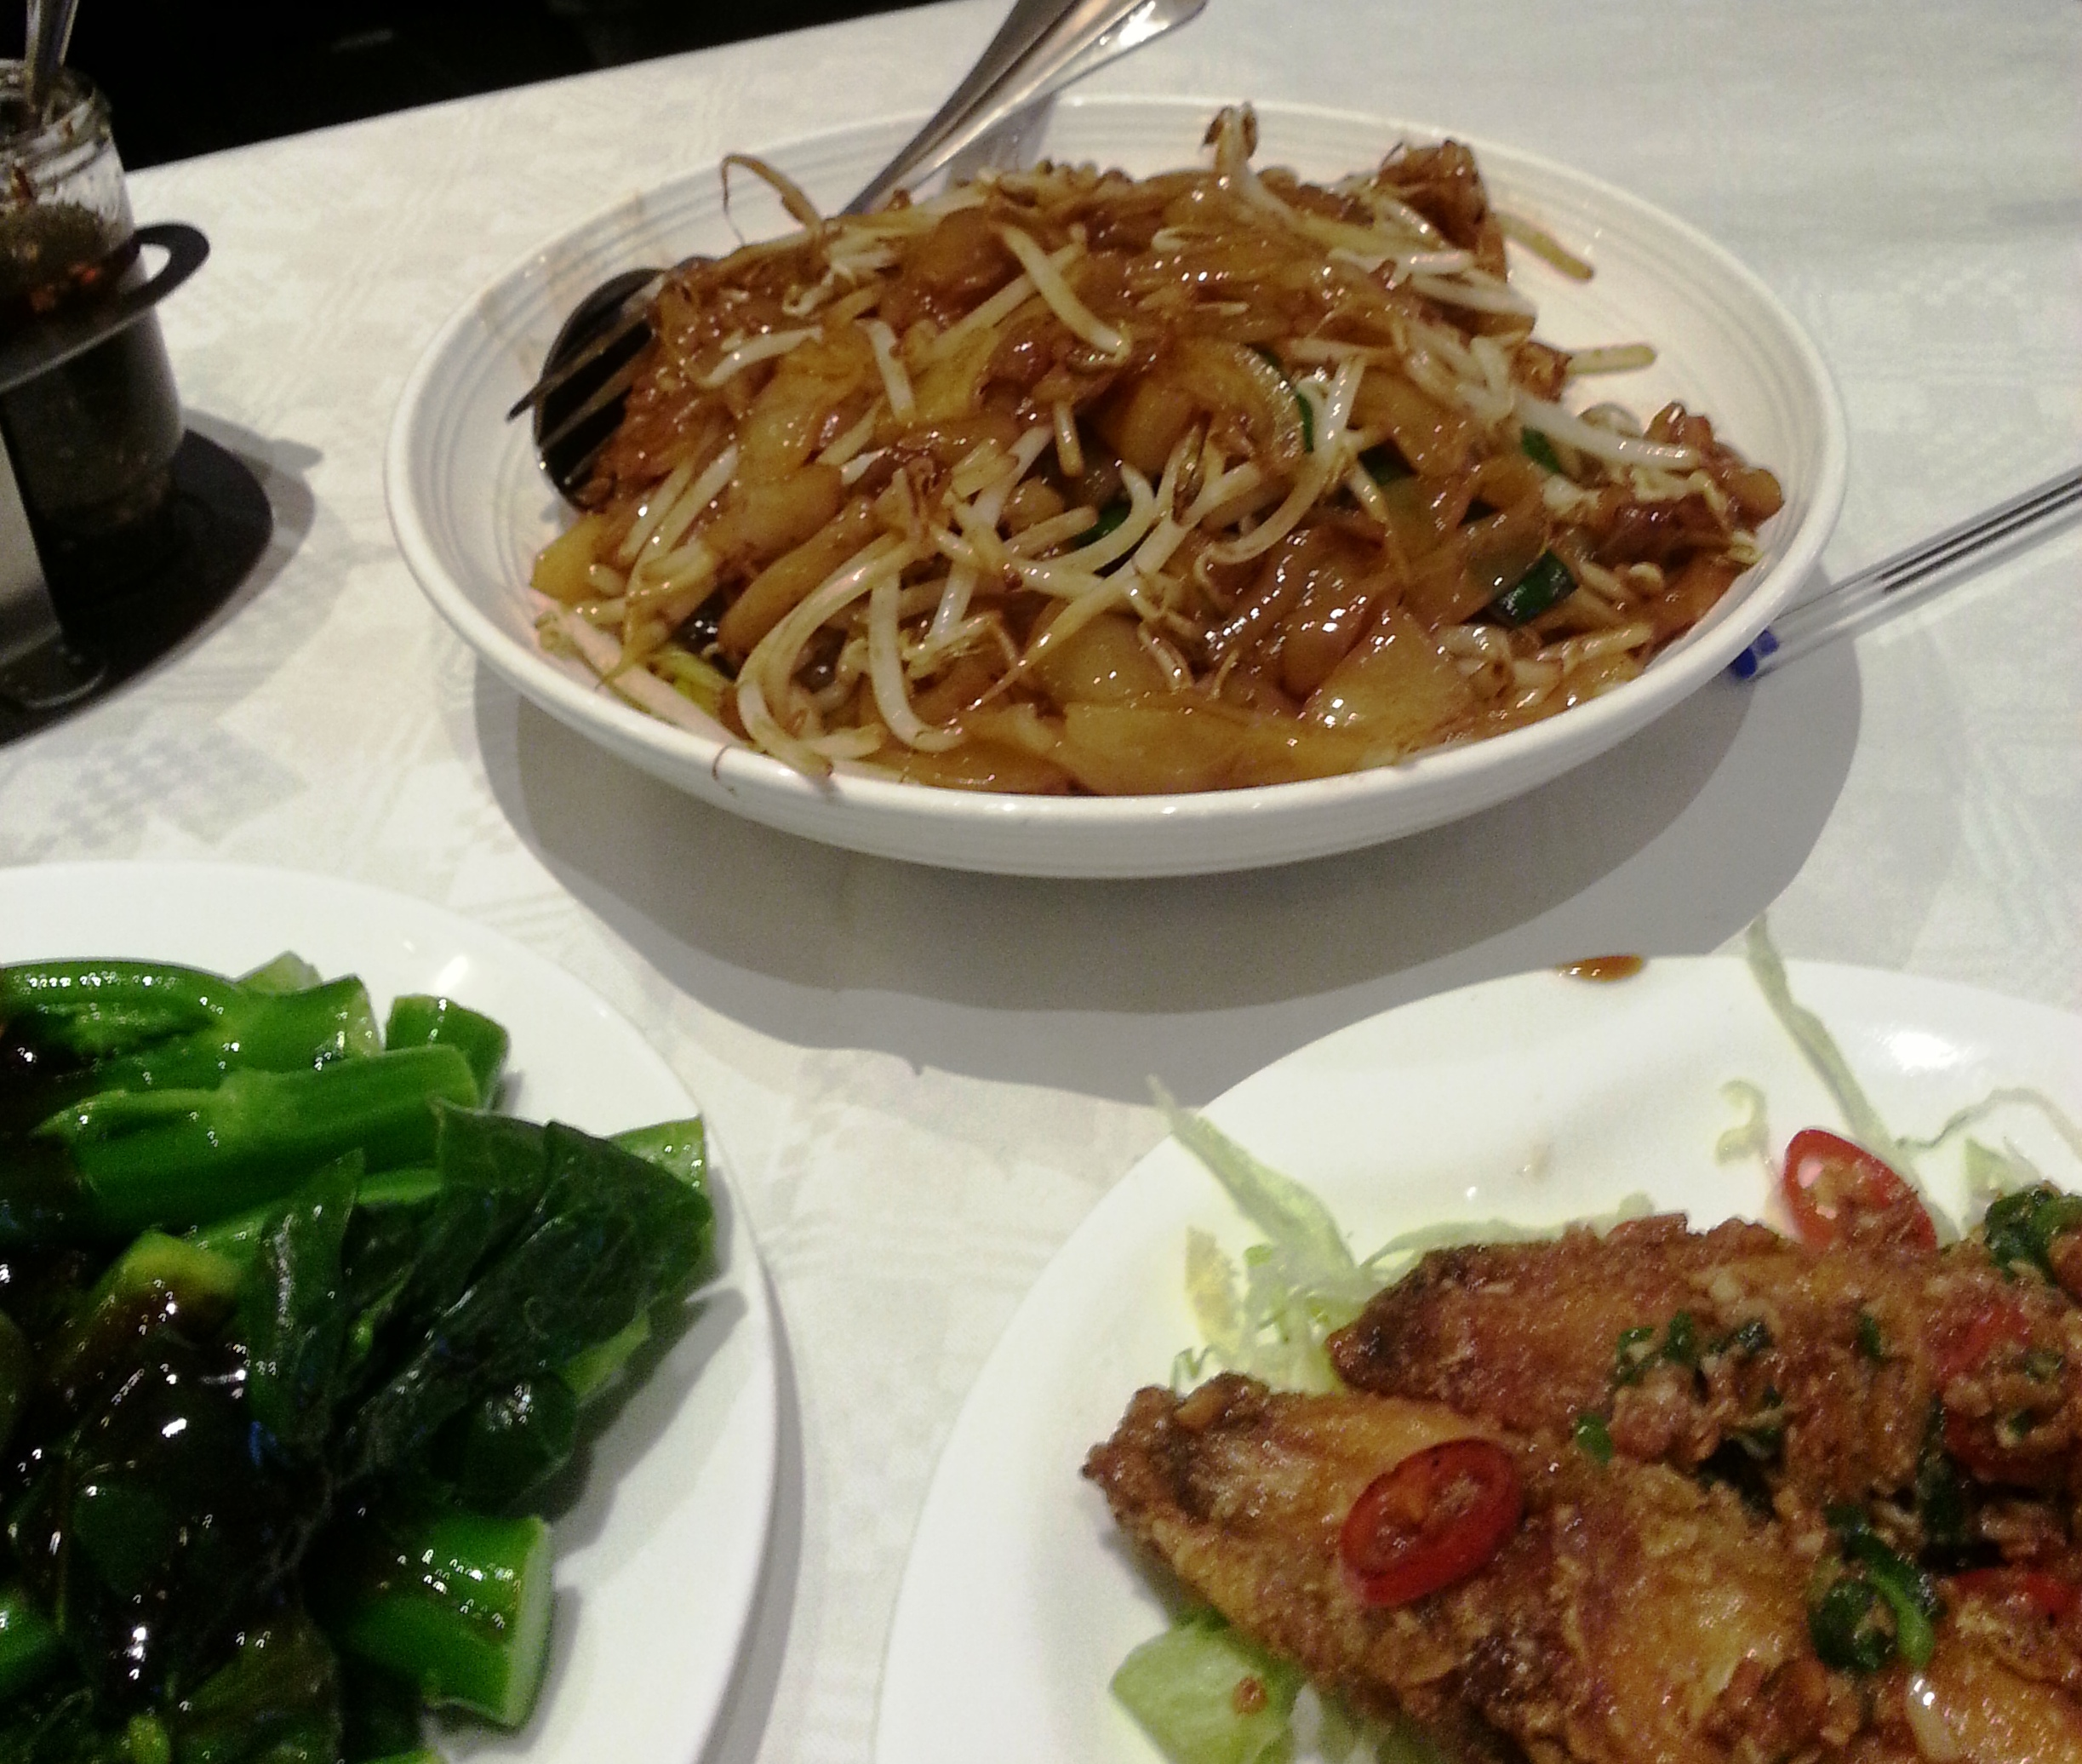 Grand garden - flat rice noodles